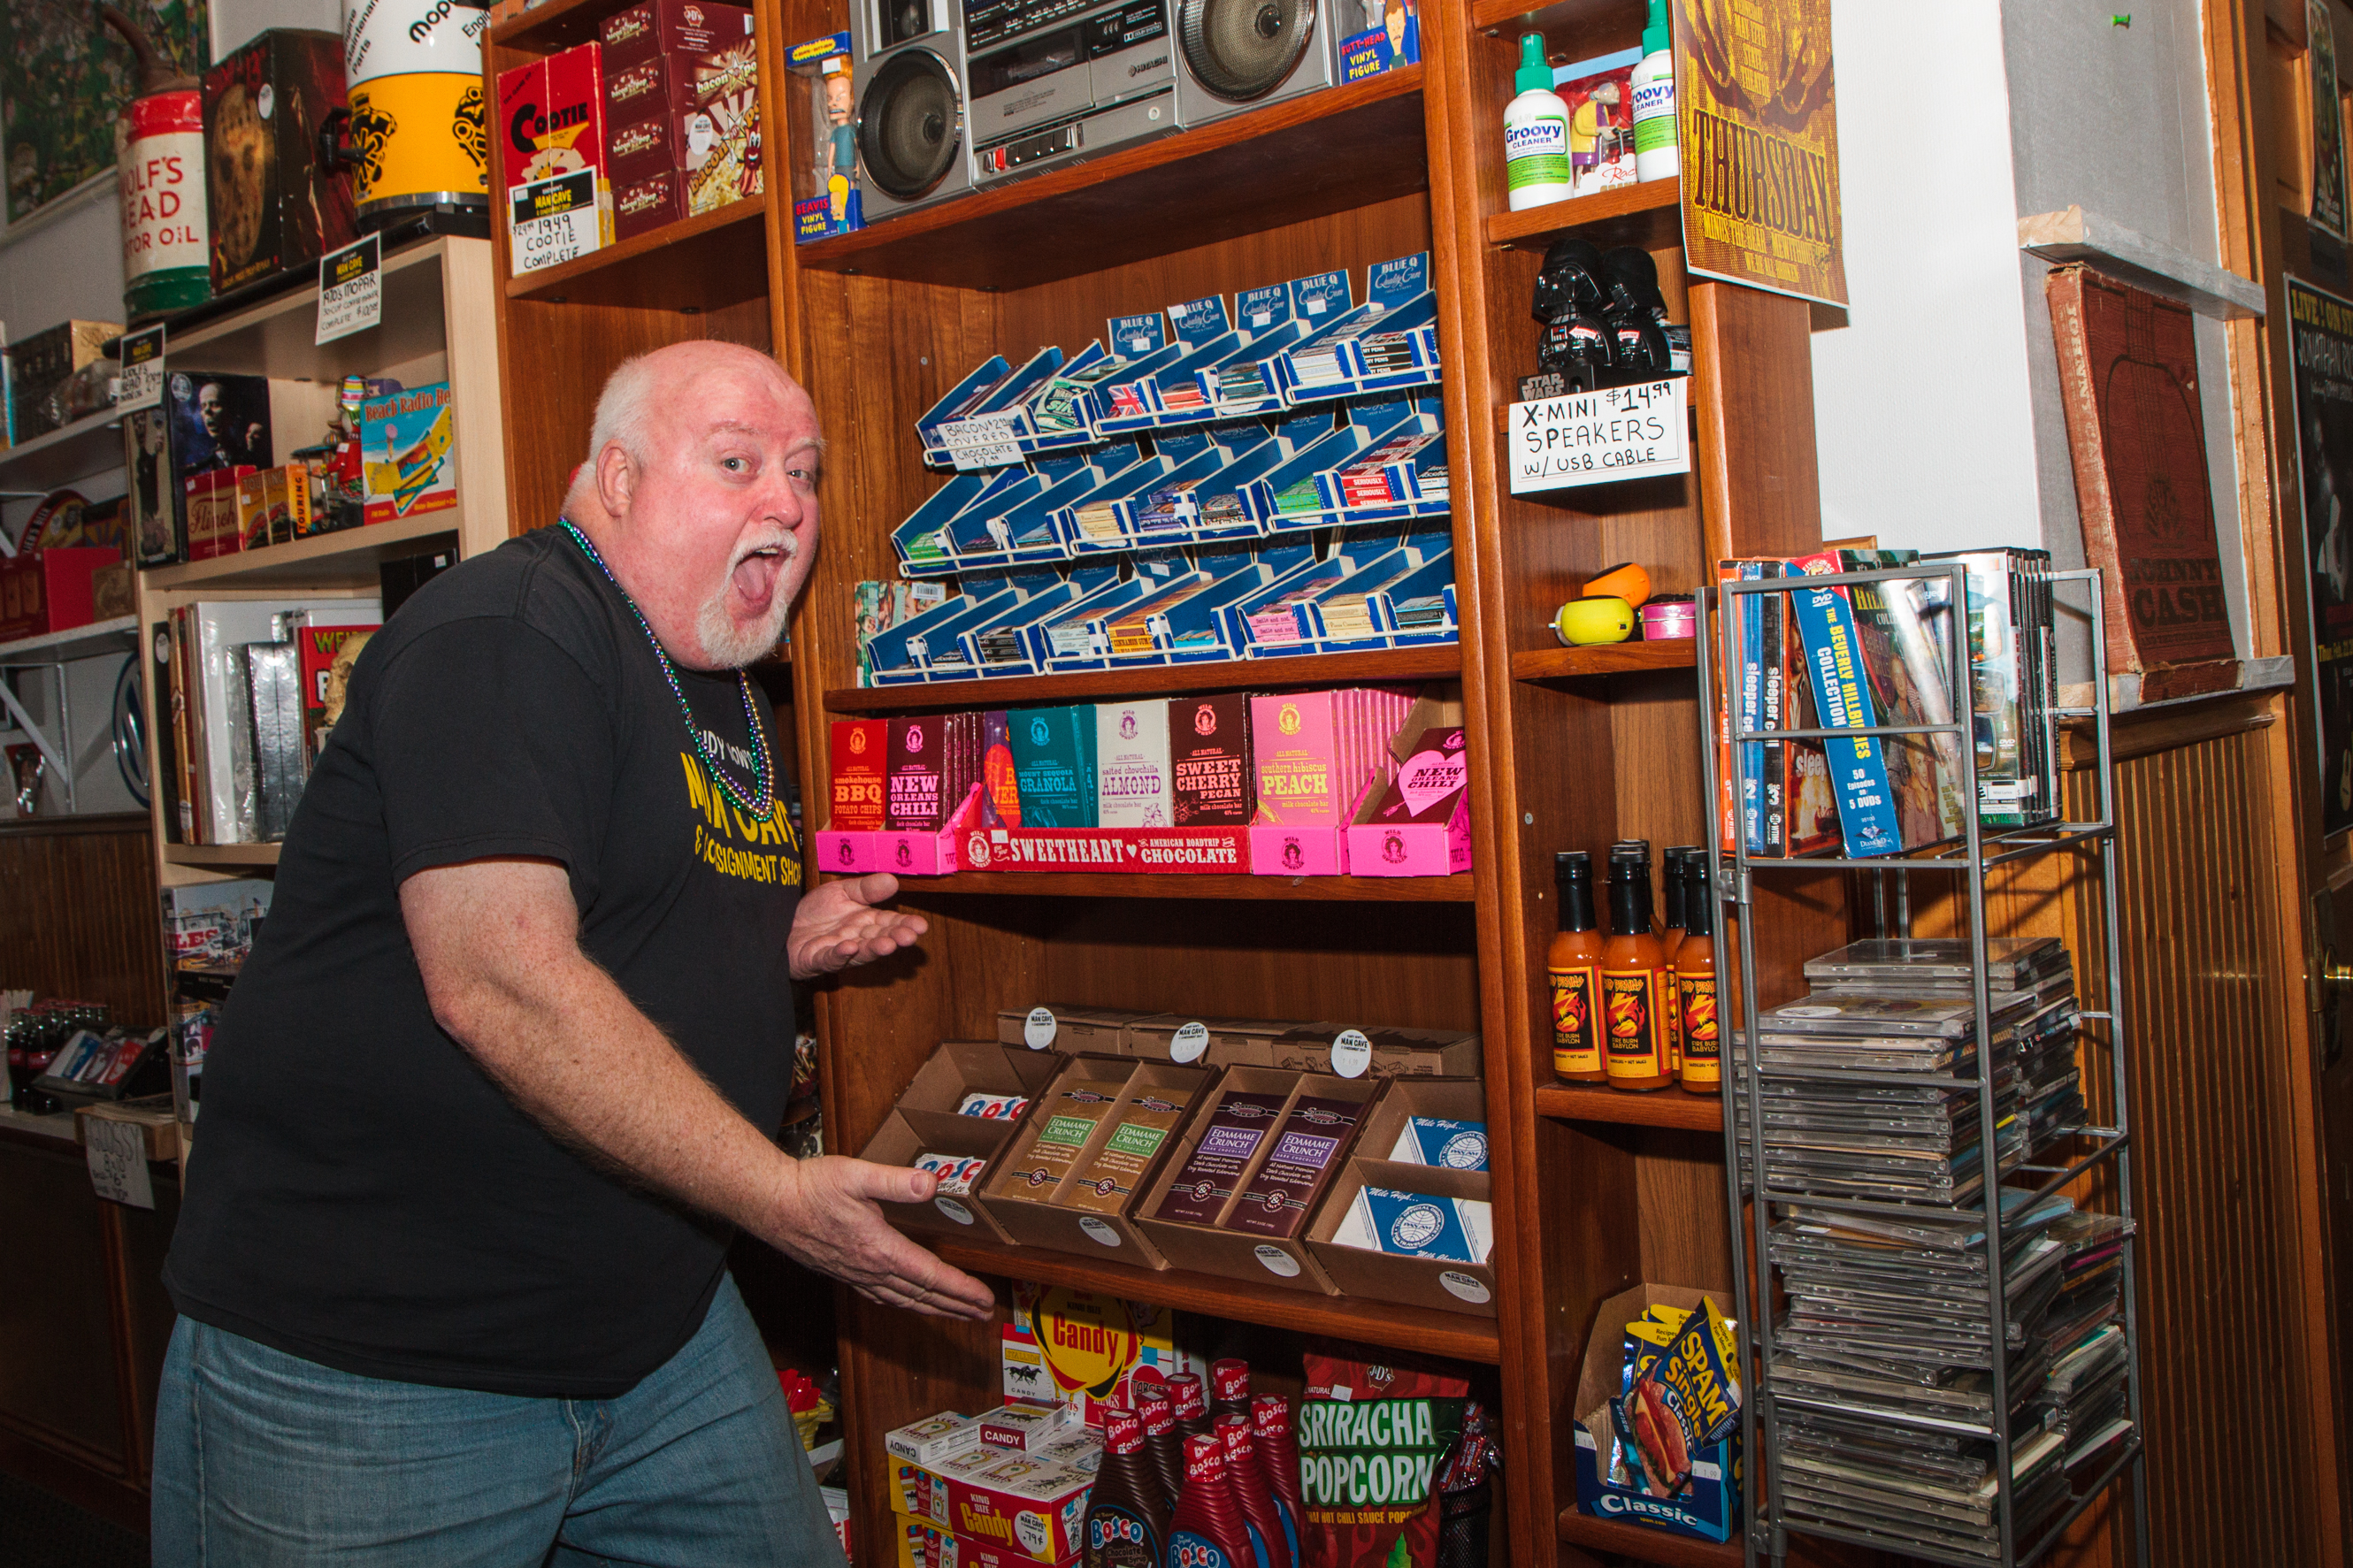 Man Cave Store Website : Chocolate randy now s man cave